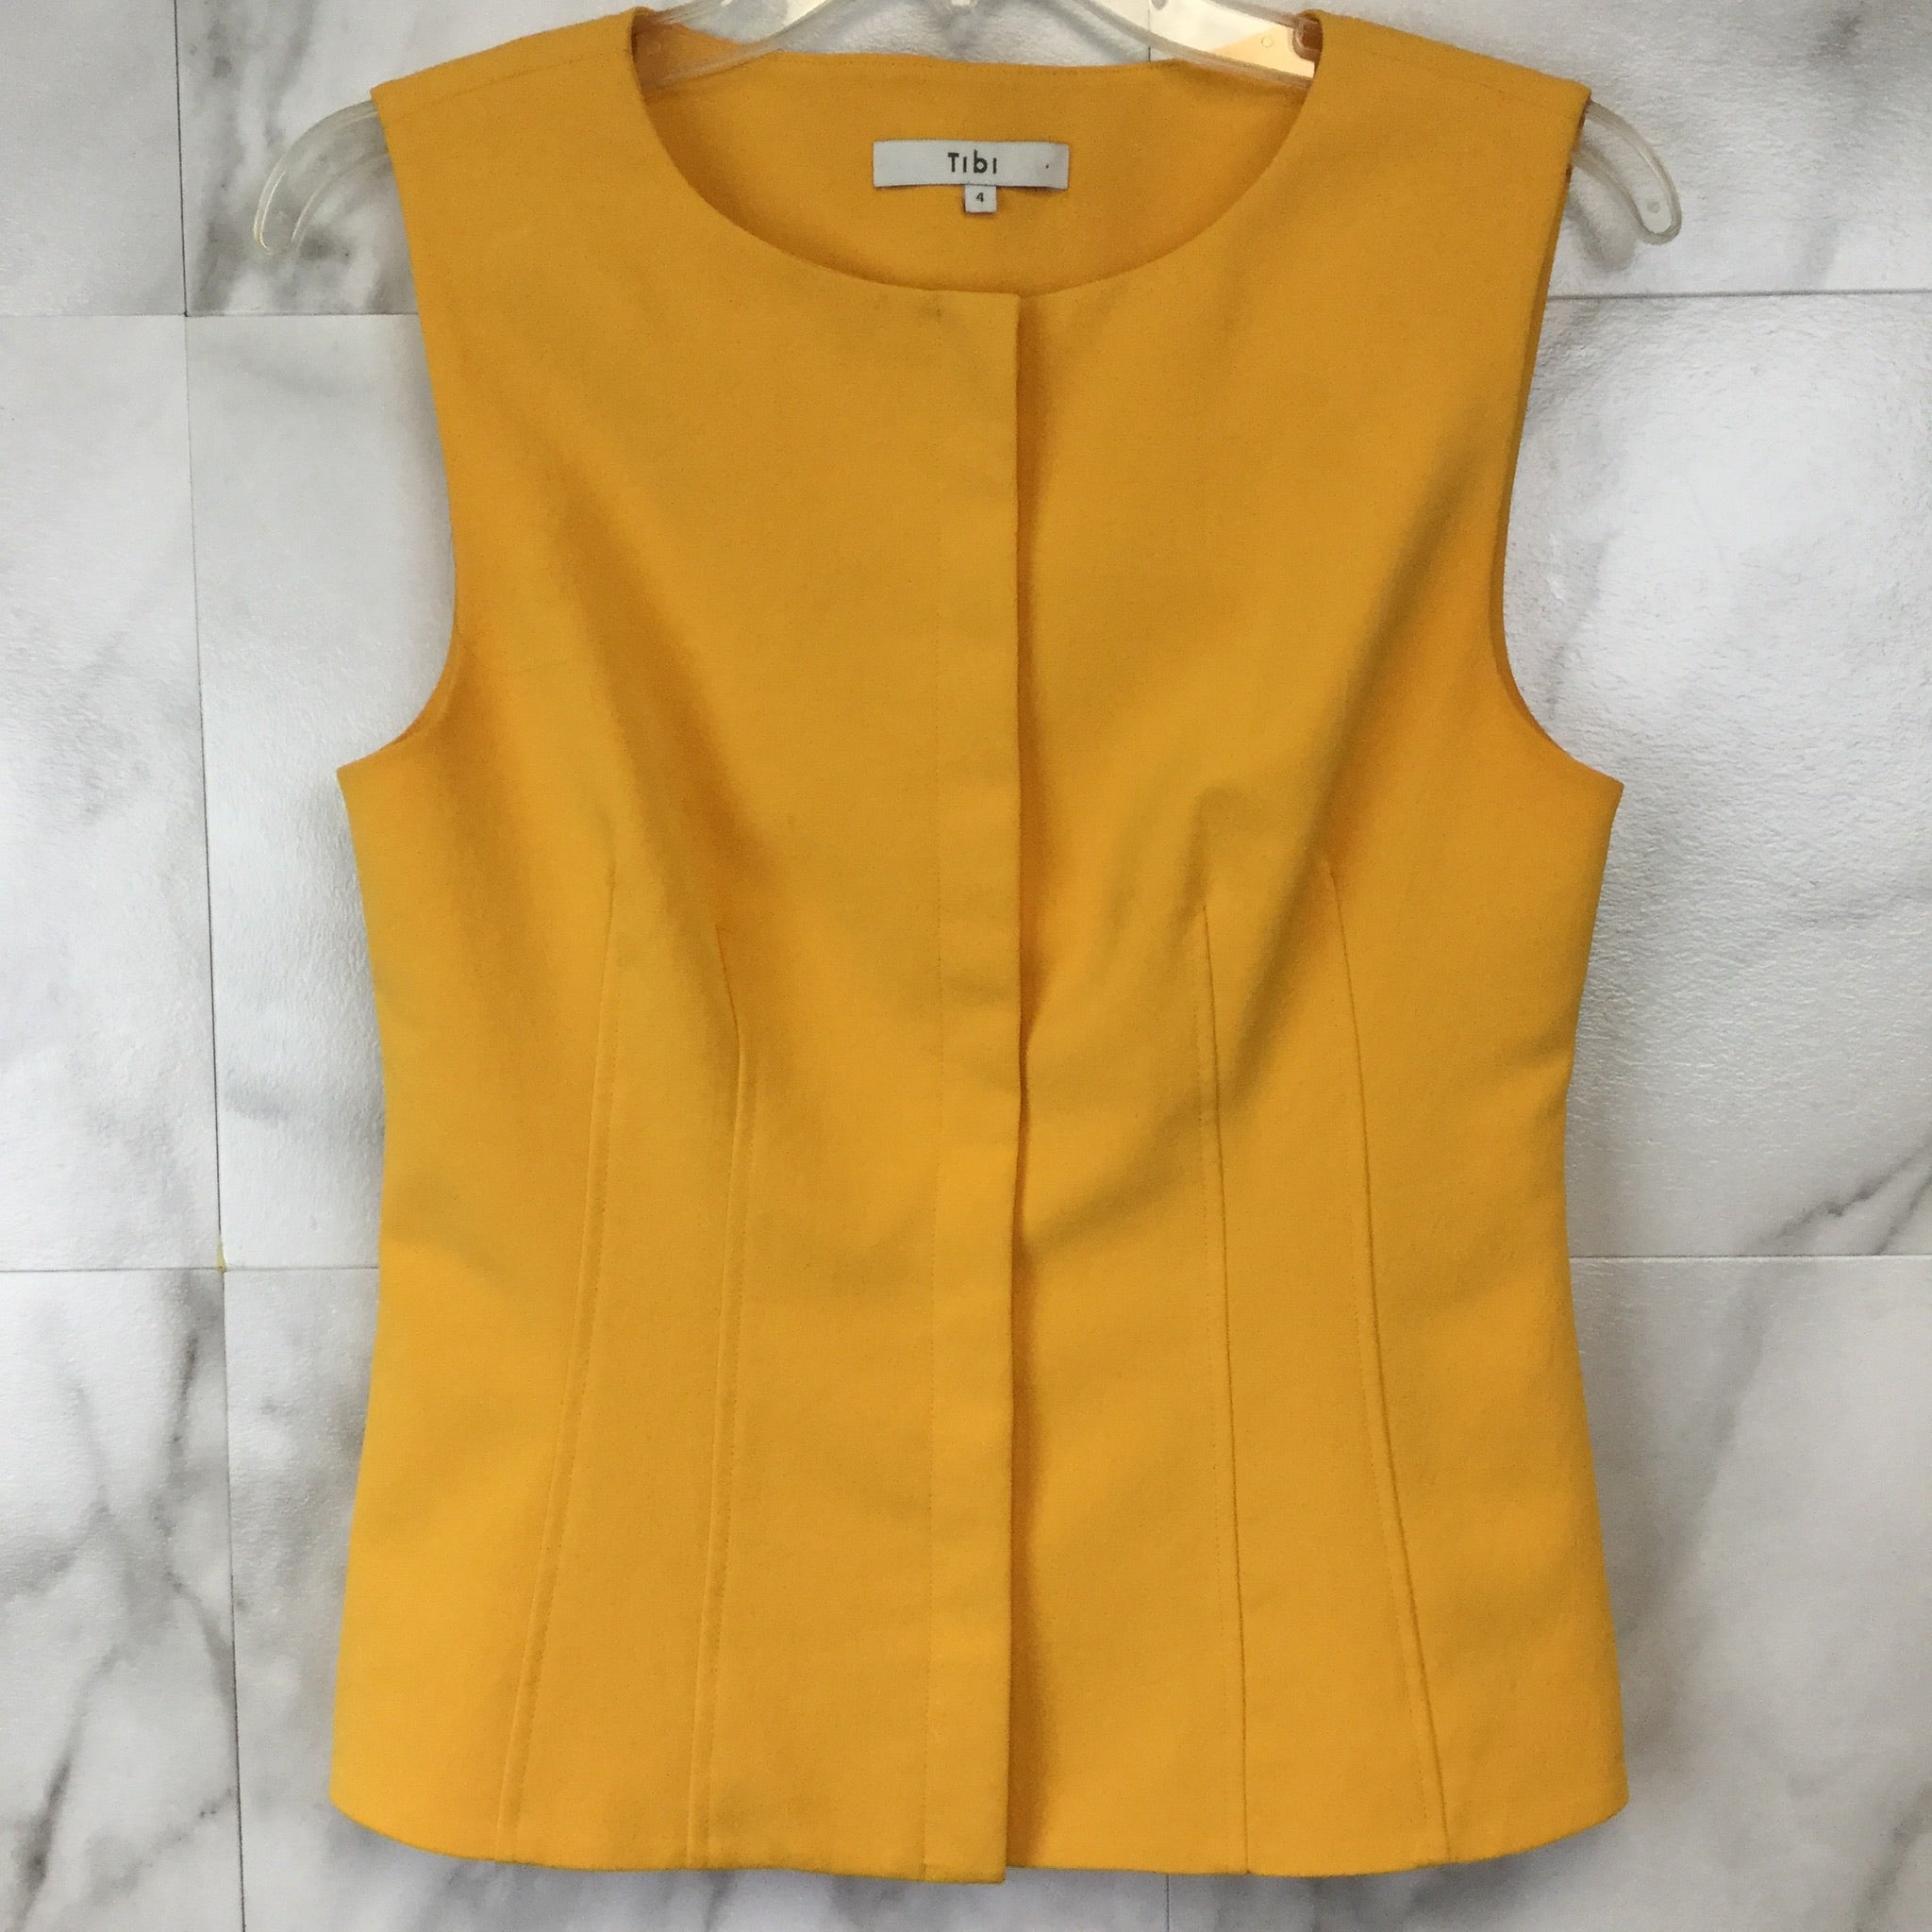 Tibi Drape Twill Sleeveless Corset Top - size 4